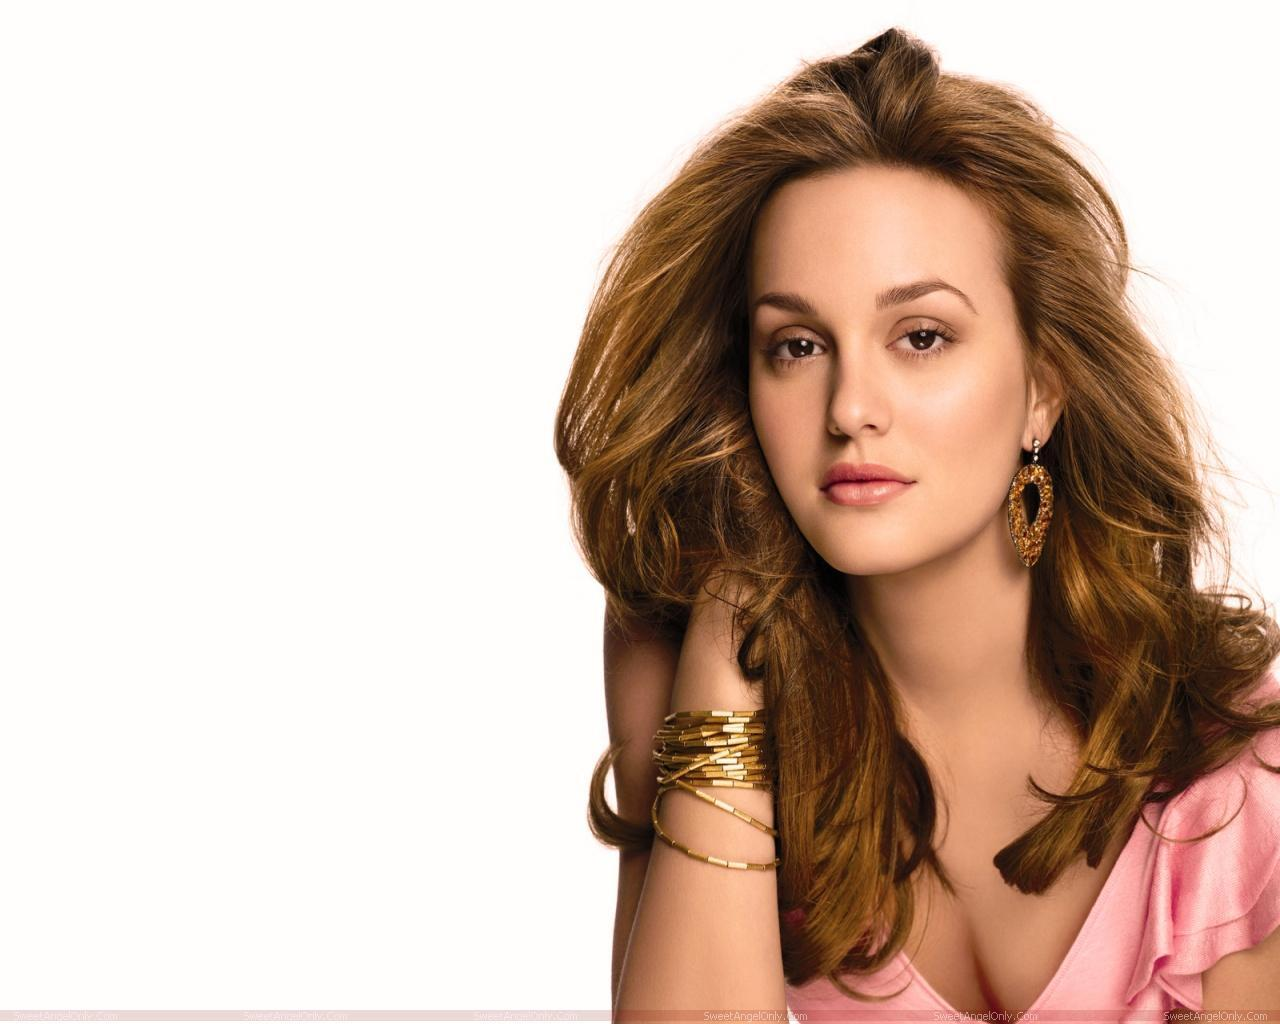 http://4.bp.blogspot.com/-9gMm6PoWMWw/TX-wld4lYHI/AAAAAAAAFp8/UEeQEwkYwf0/s1600/leighton_meester_hollywood_hot_actress_wallpaper_sweetangelonly_10.jpg